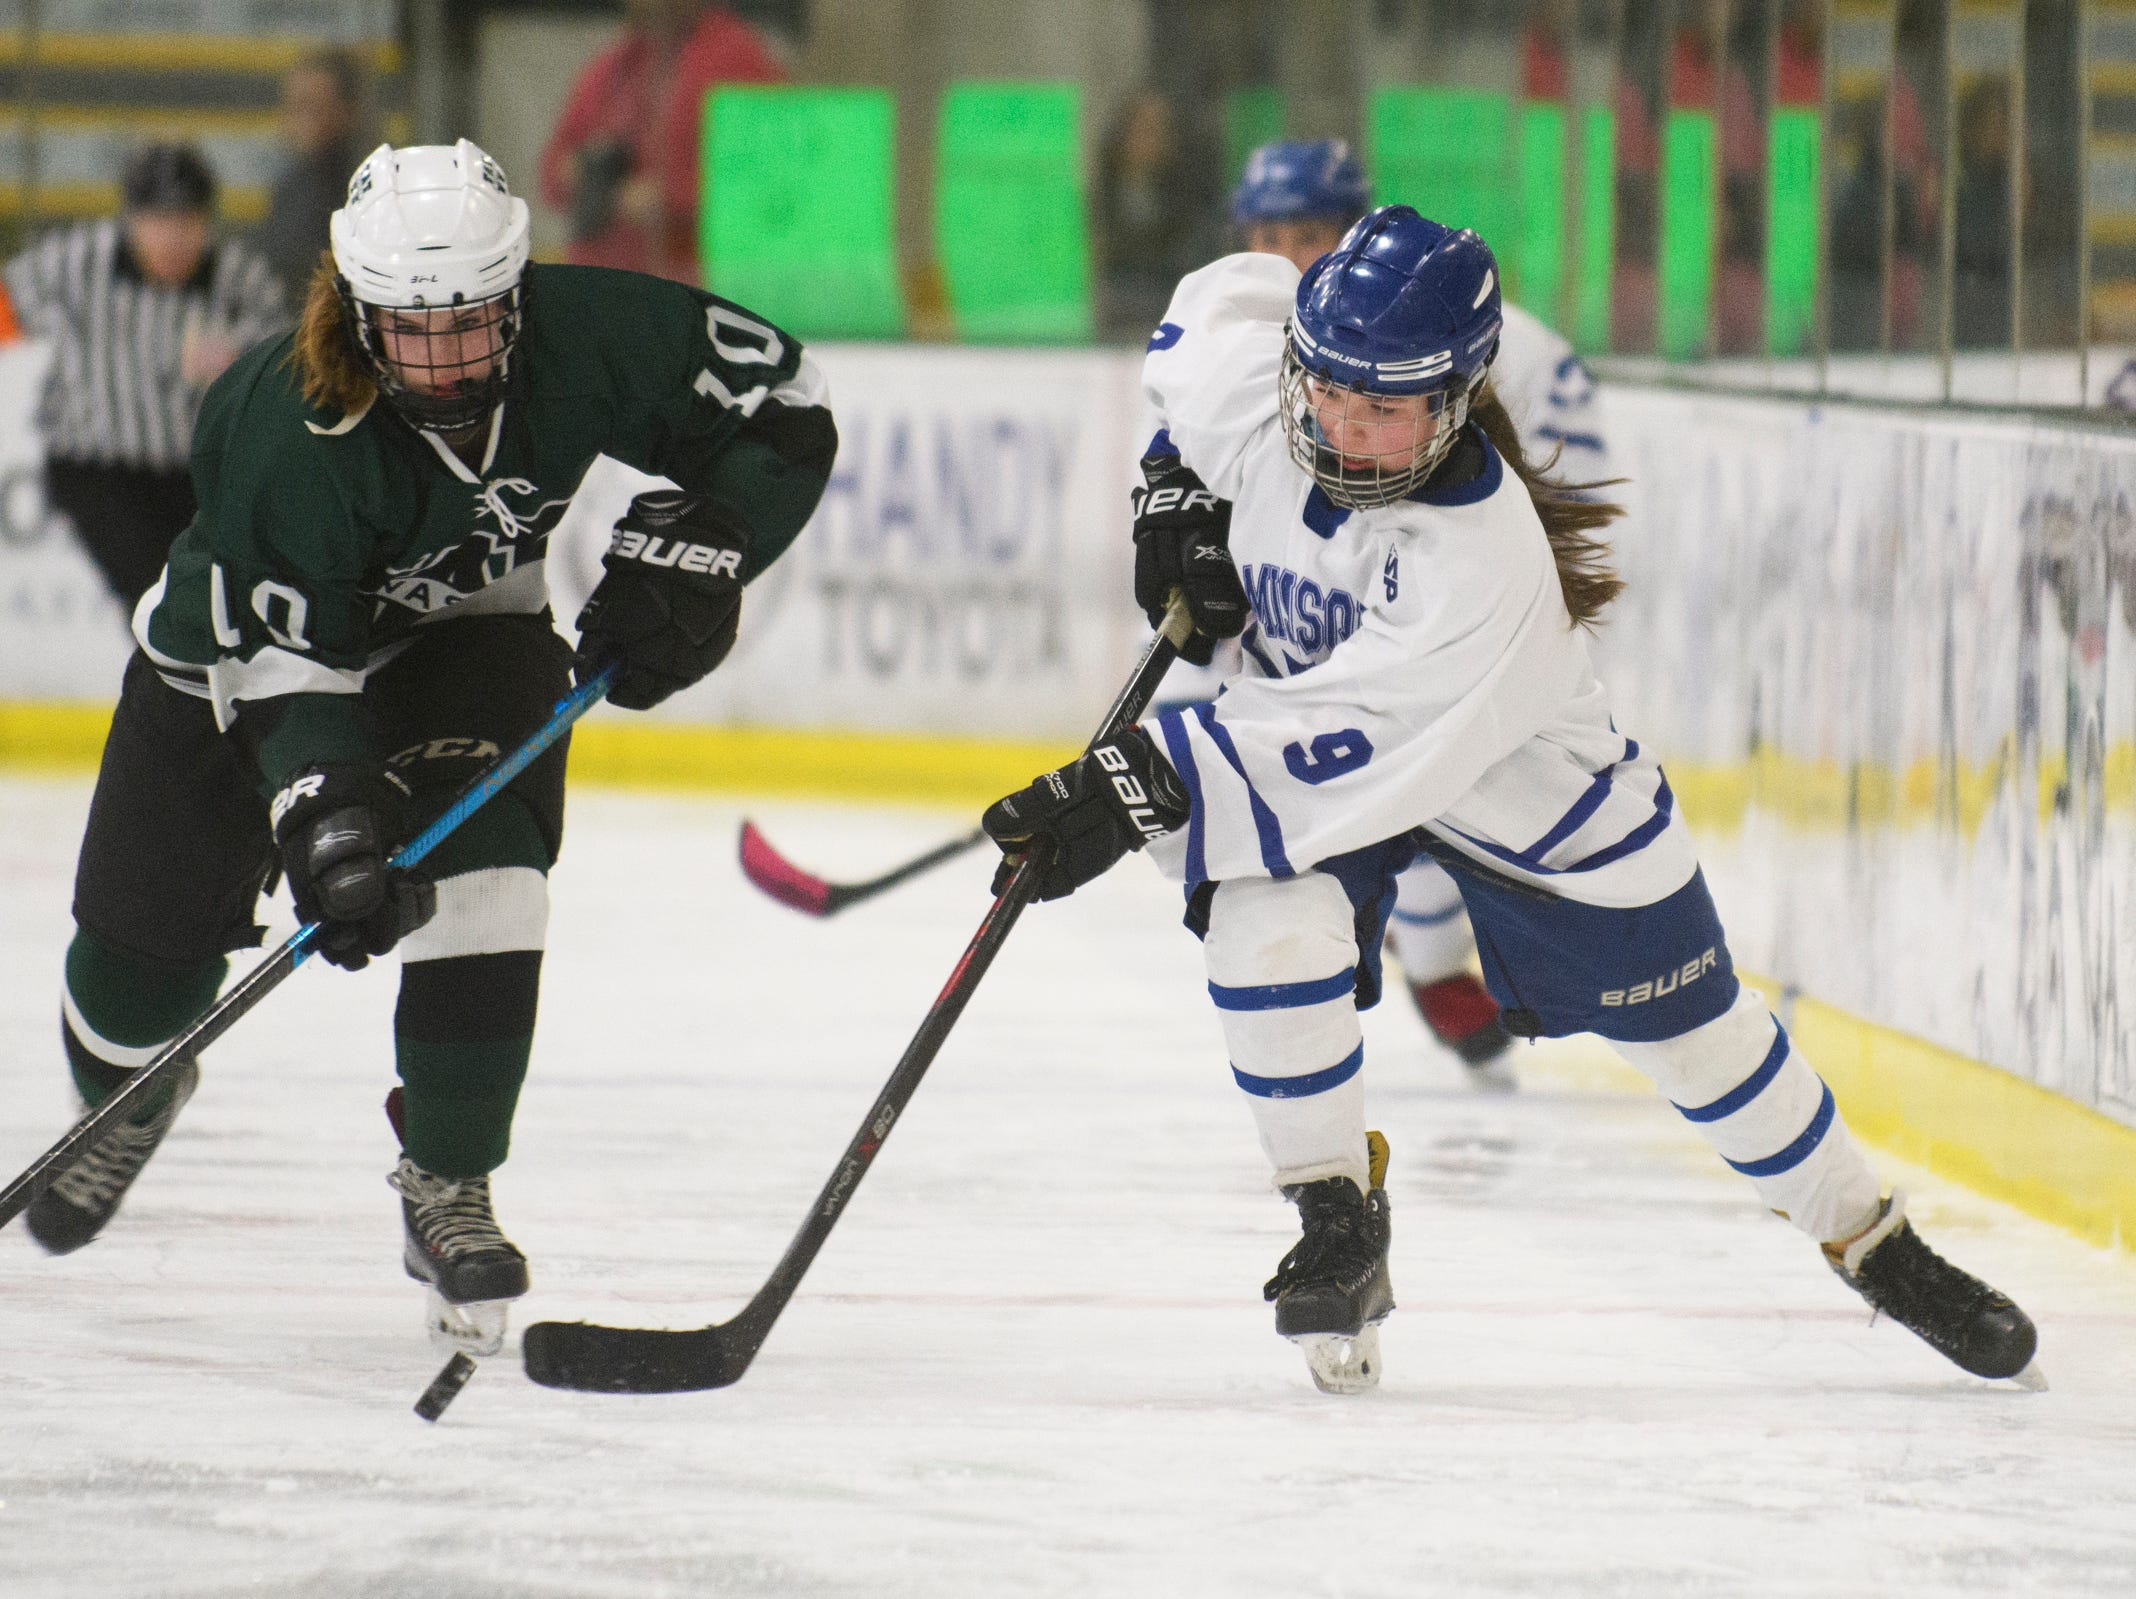 Missisquoi's Abigail Bessette (9) skates down the ice with the puck during the DII girls hockey championship game between the Woodstock Wasps and the Missisquoi Thunderbirds at Gutterson Field House on Thursday night March 14, 2019 in Burlington, Vermont.